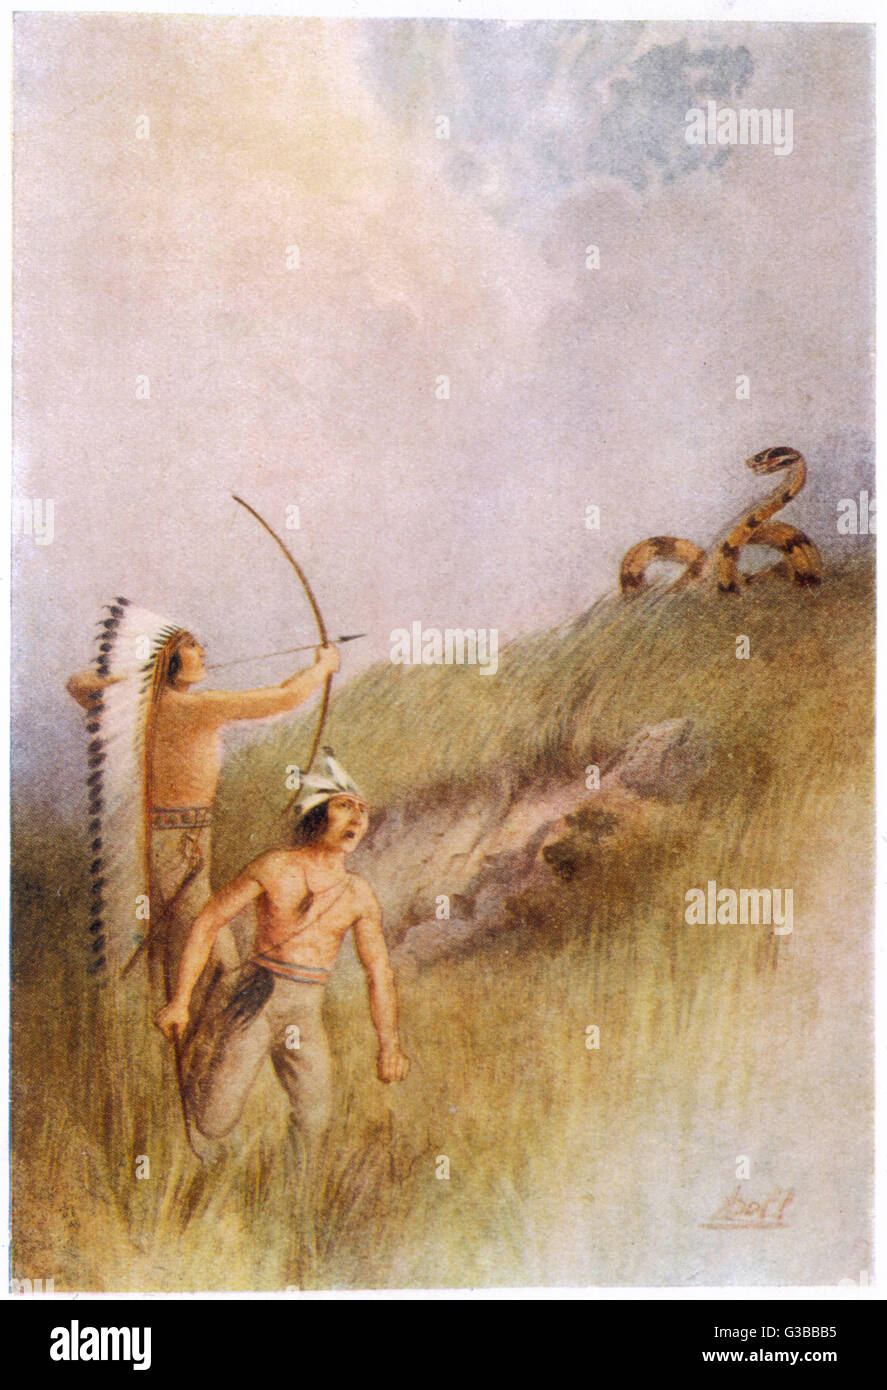 The Sioux war chief shoots an  arrow at the Monster  Ratlesnake & kills it        Date: 1914 - Stock Image